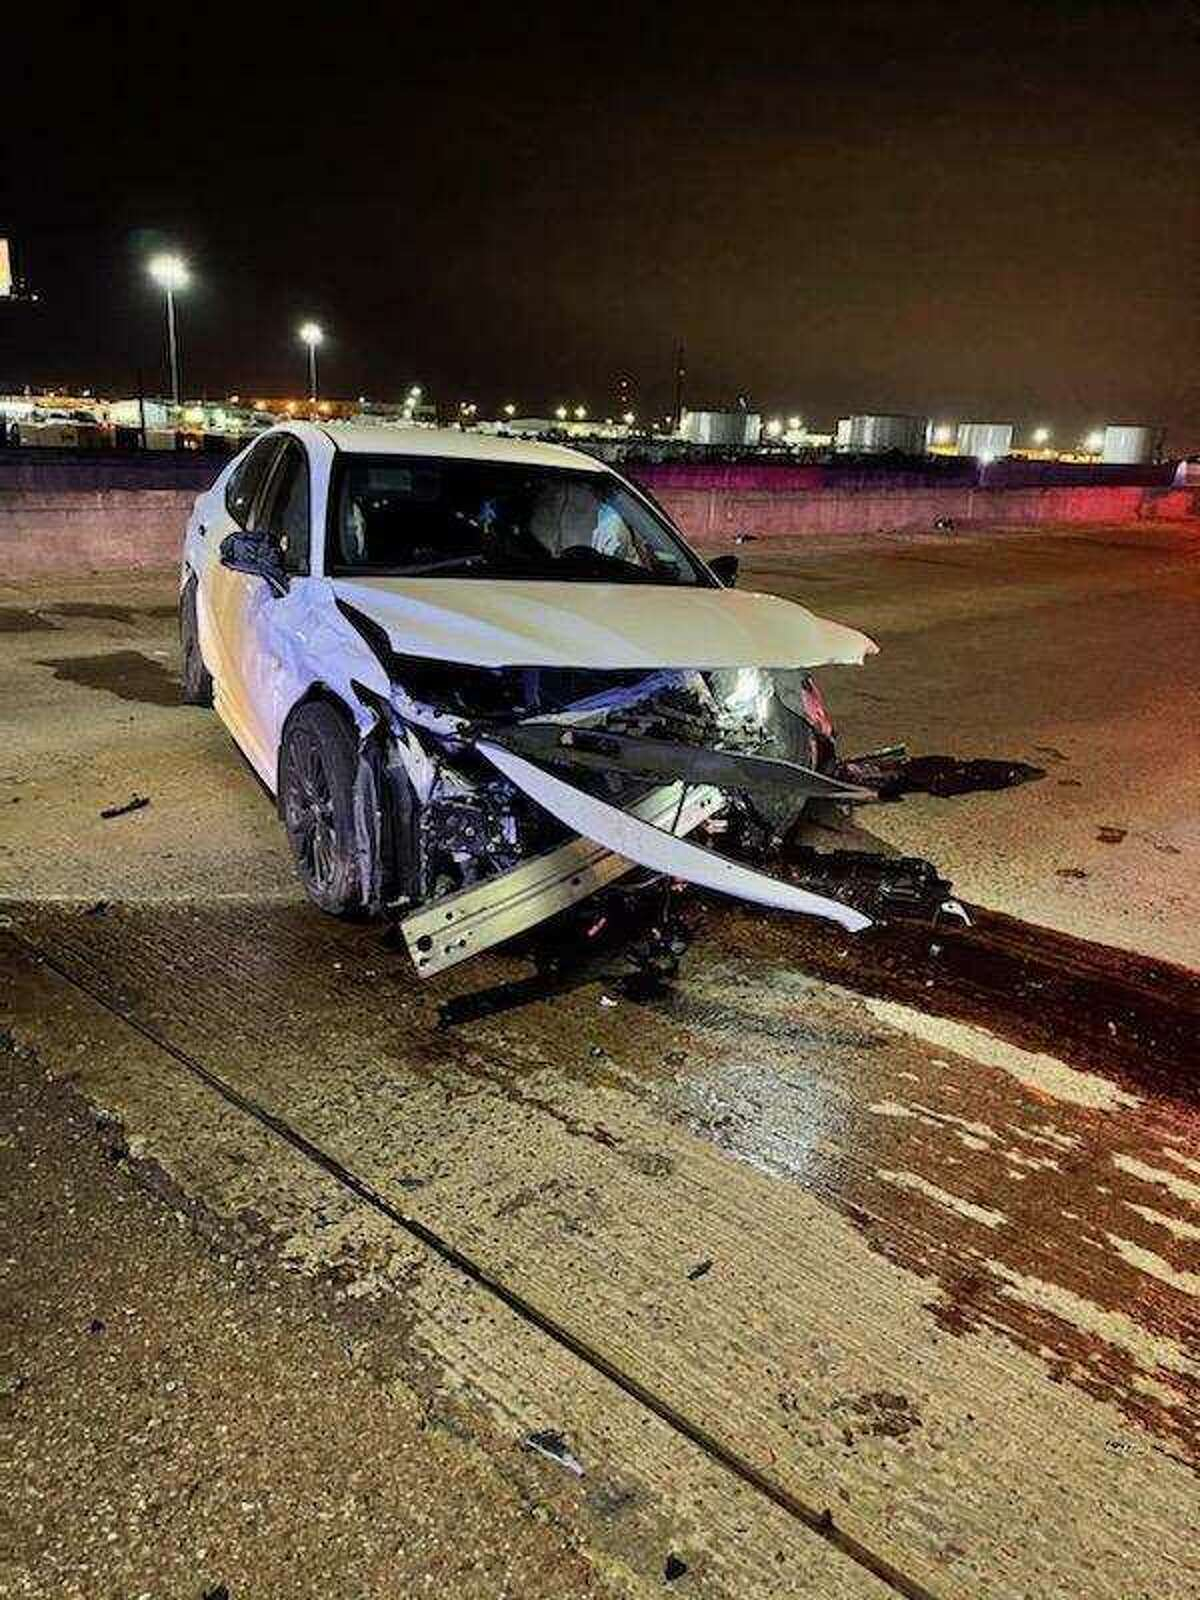 A single-vehicle crash reported on Friday evening in north Laredo left a man and two children injured. The incident occurred on mile marker 13 of Interstate 35. All were reported in stable condition.